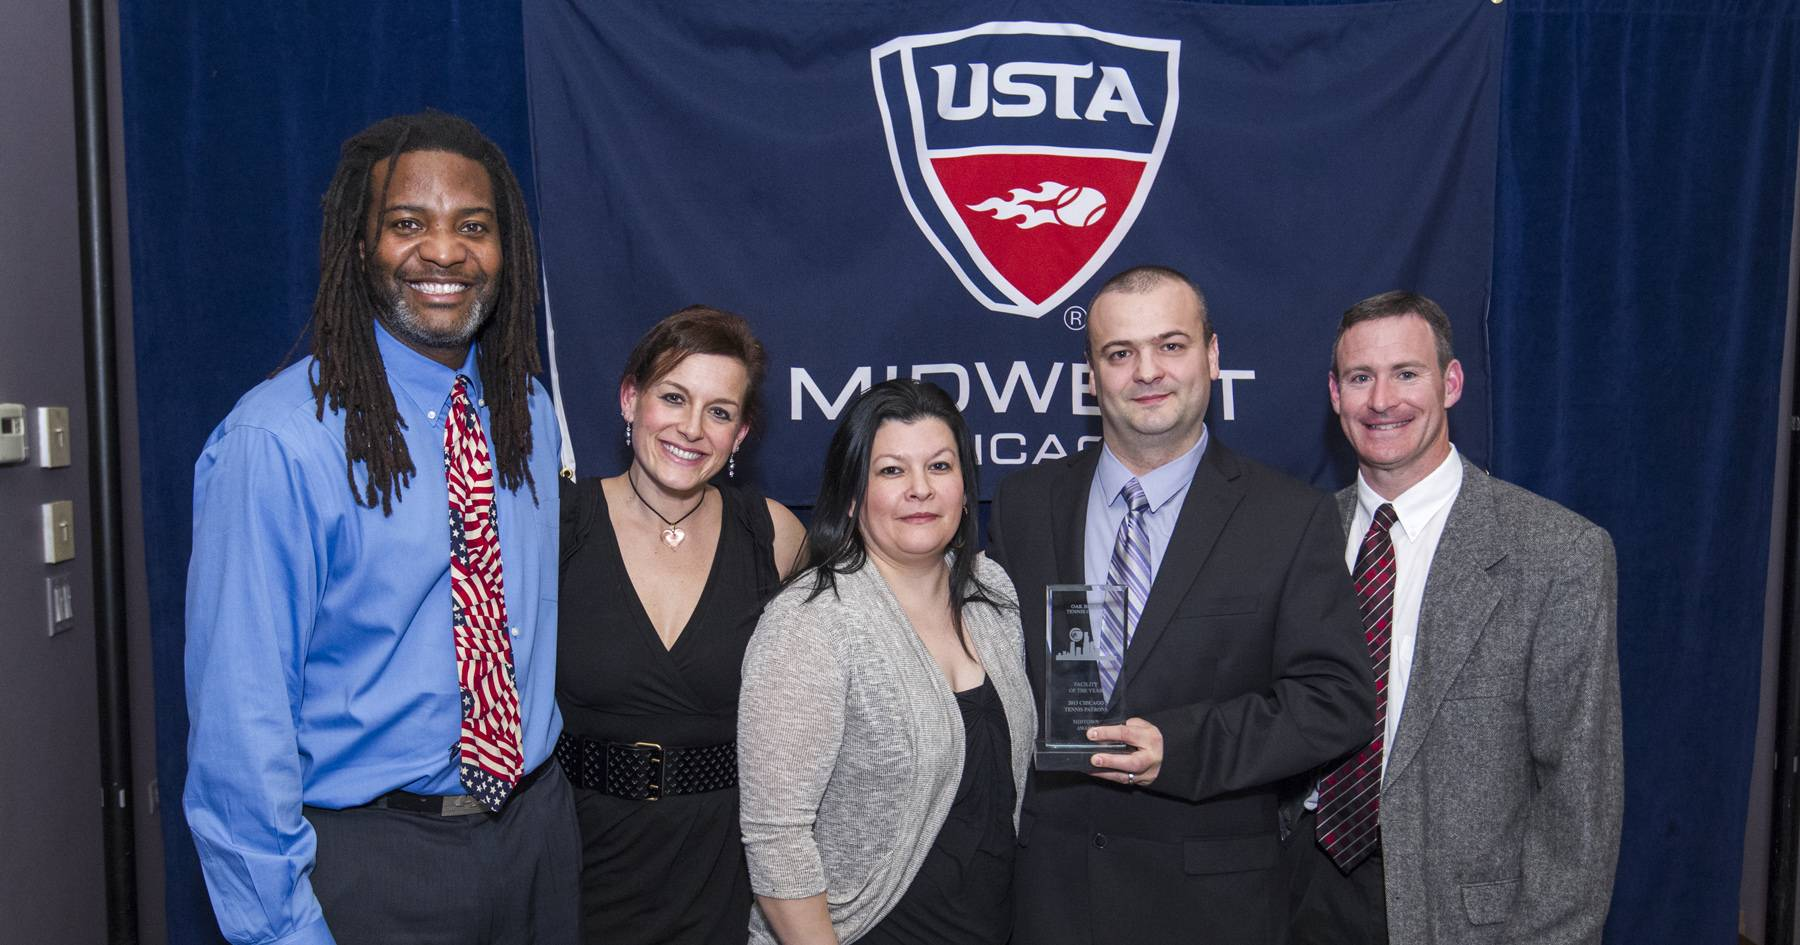 Chicago USTAPhoto Release: From left to right: Oak Brook Park District Tennis Center Representatives Andre Dockens, Tennis Professional; Brooke Wedding, Tennis Professional;  Leticia Limonez, Assistant Tennis Center Manager; Alin Pop, Tennis Center Manager; and Roger Emig, Tennis Professional accept the 2013 award for Outstanding Facility of the Year from the Chicago USTA during the 25th Annual Evening of Champions.